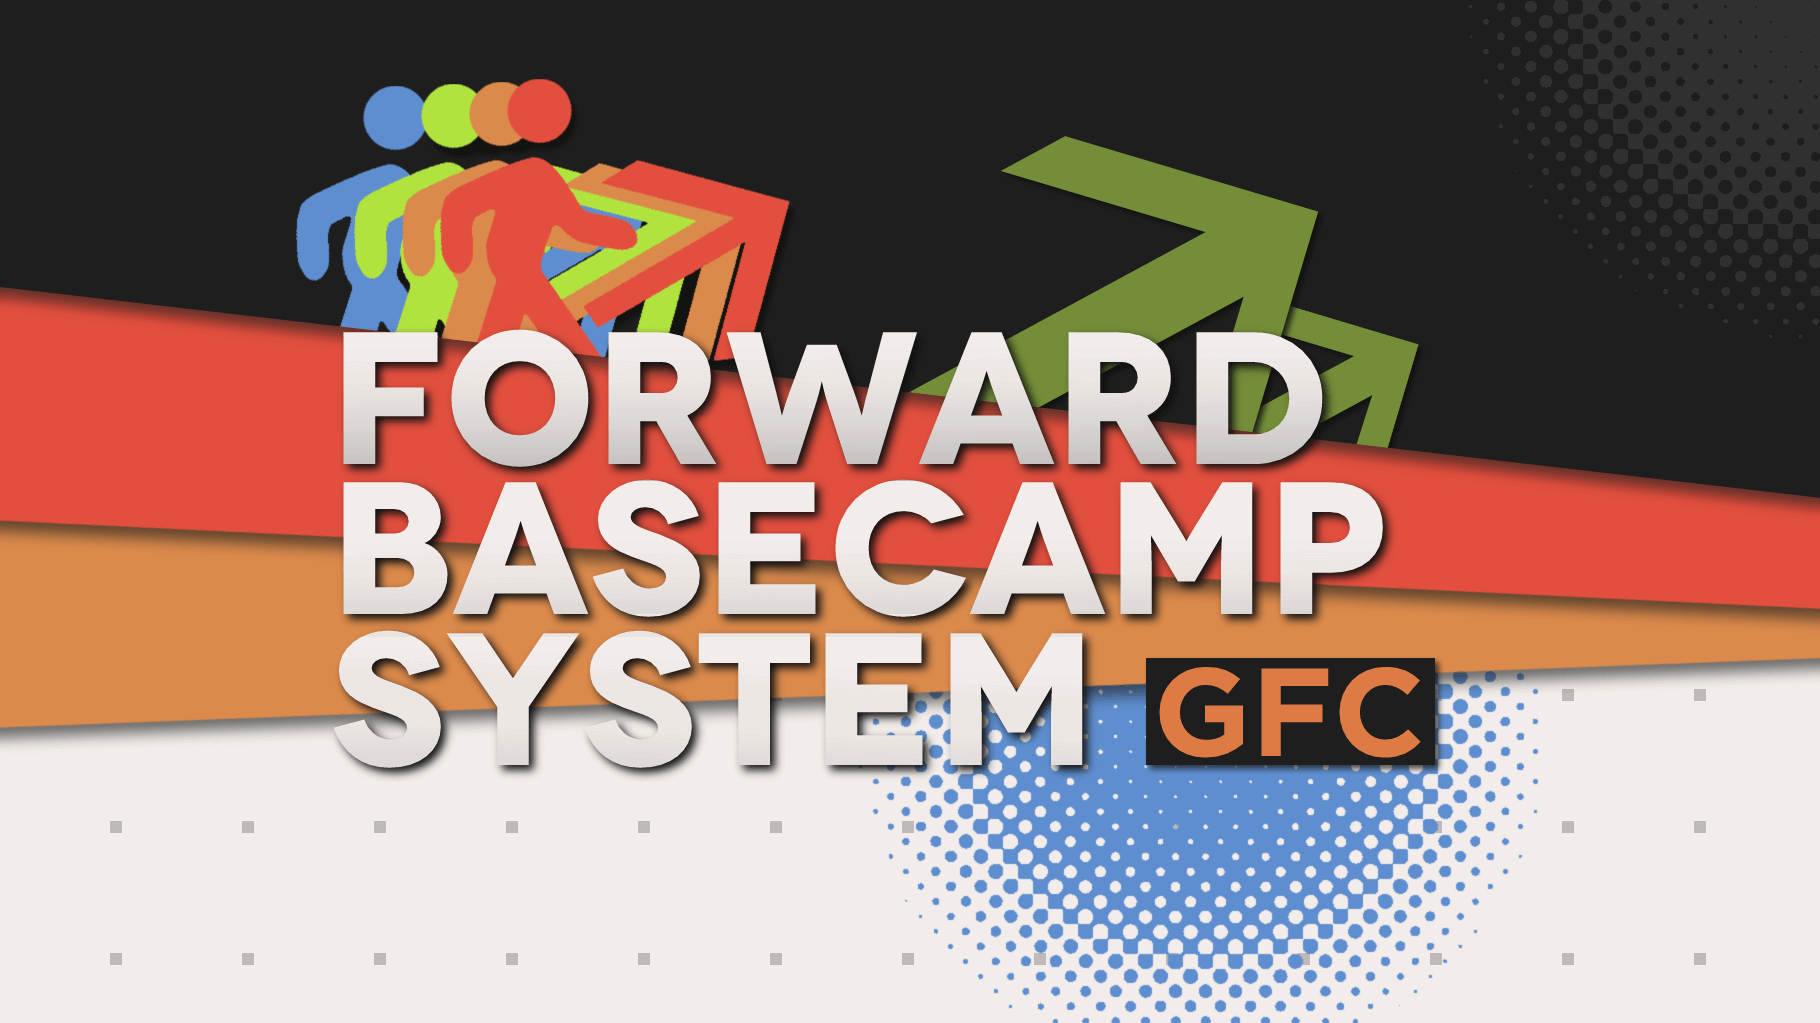 Forward Basecamp/Expedition Guide by GFC